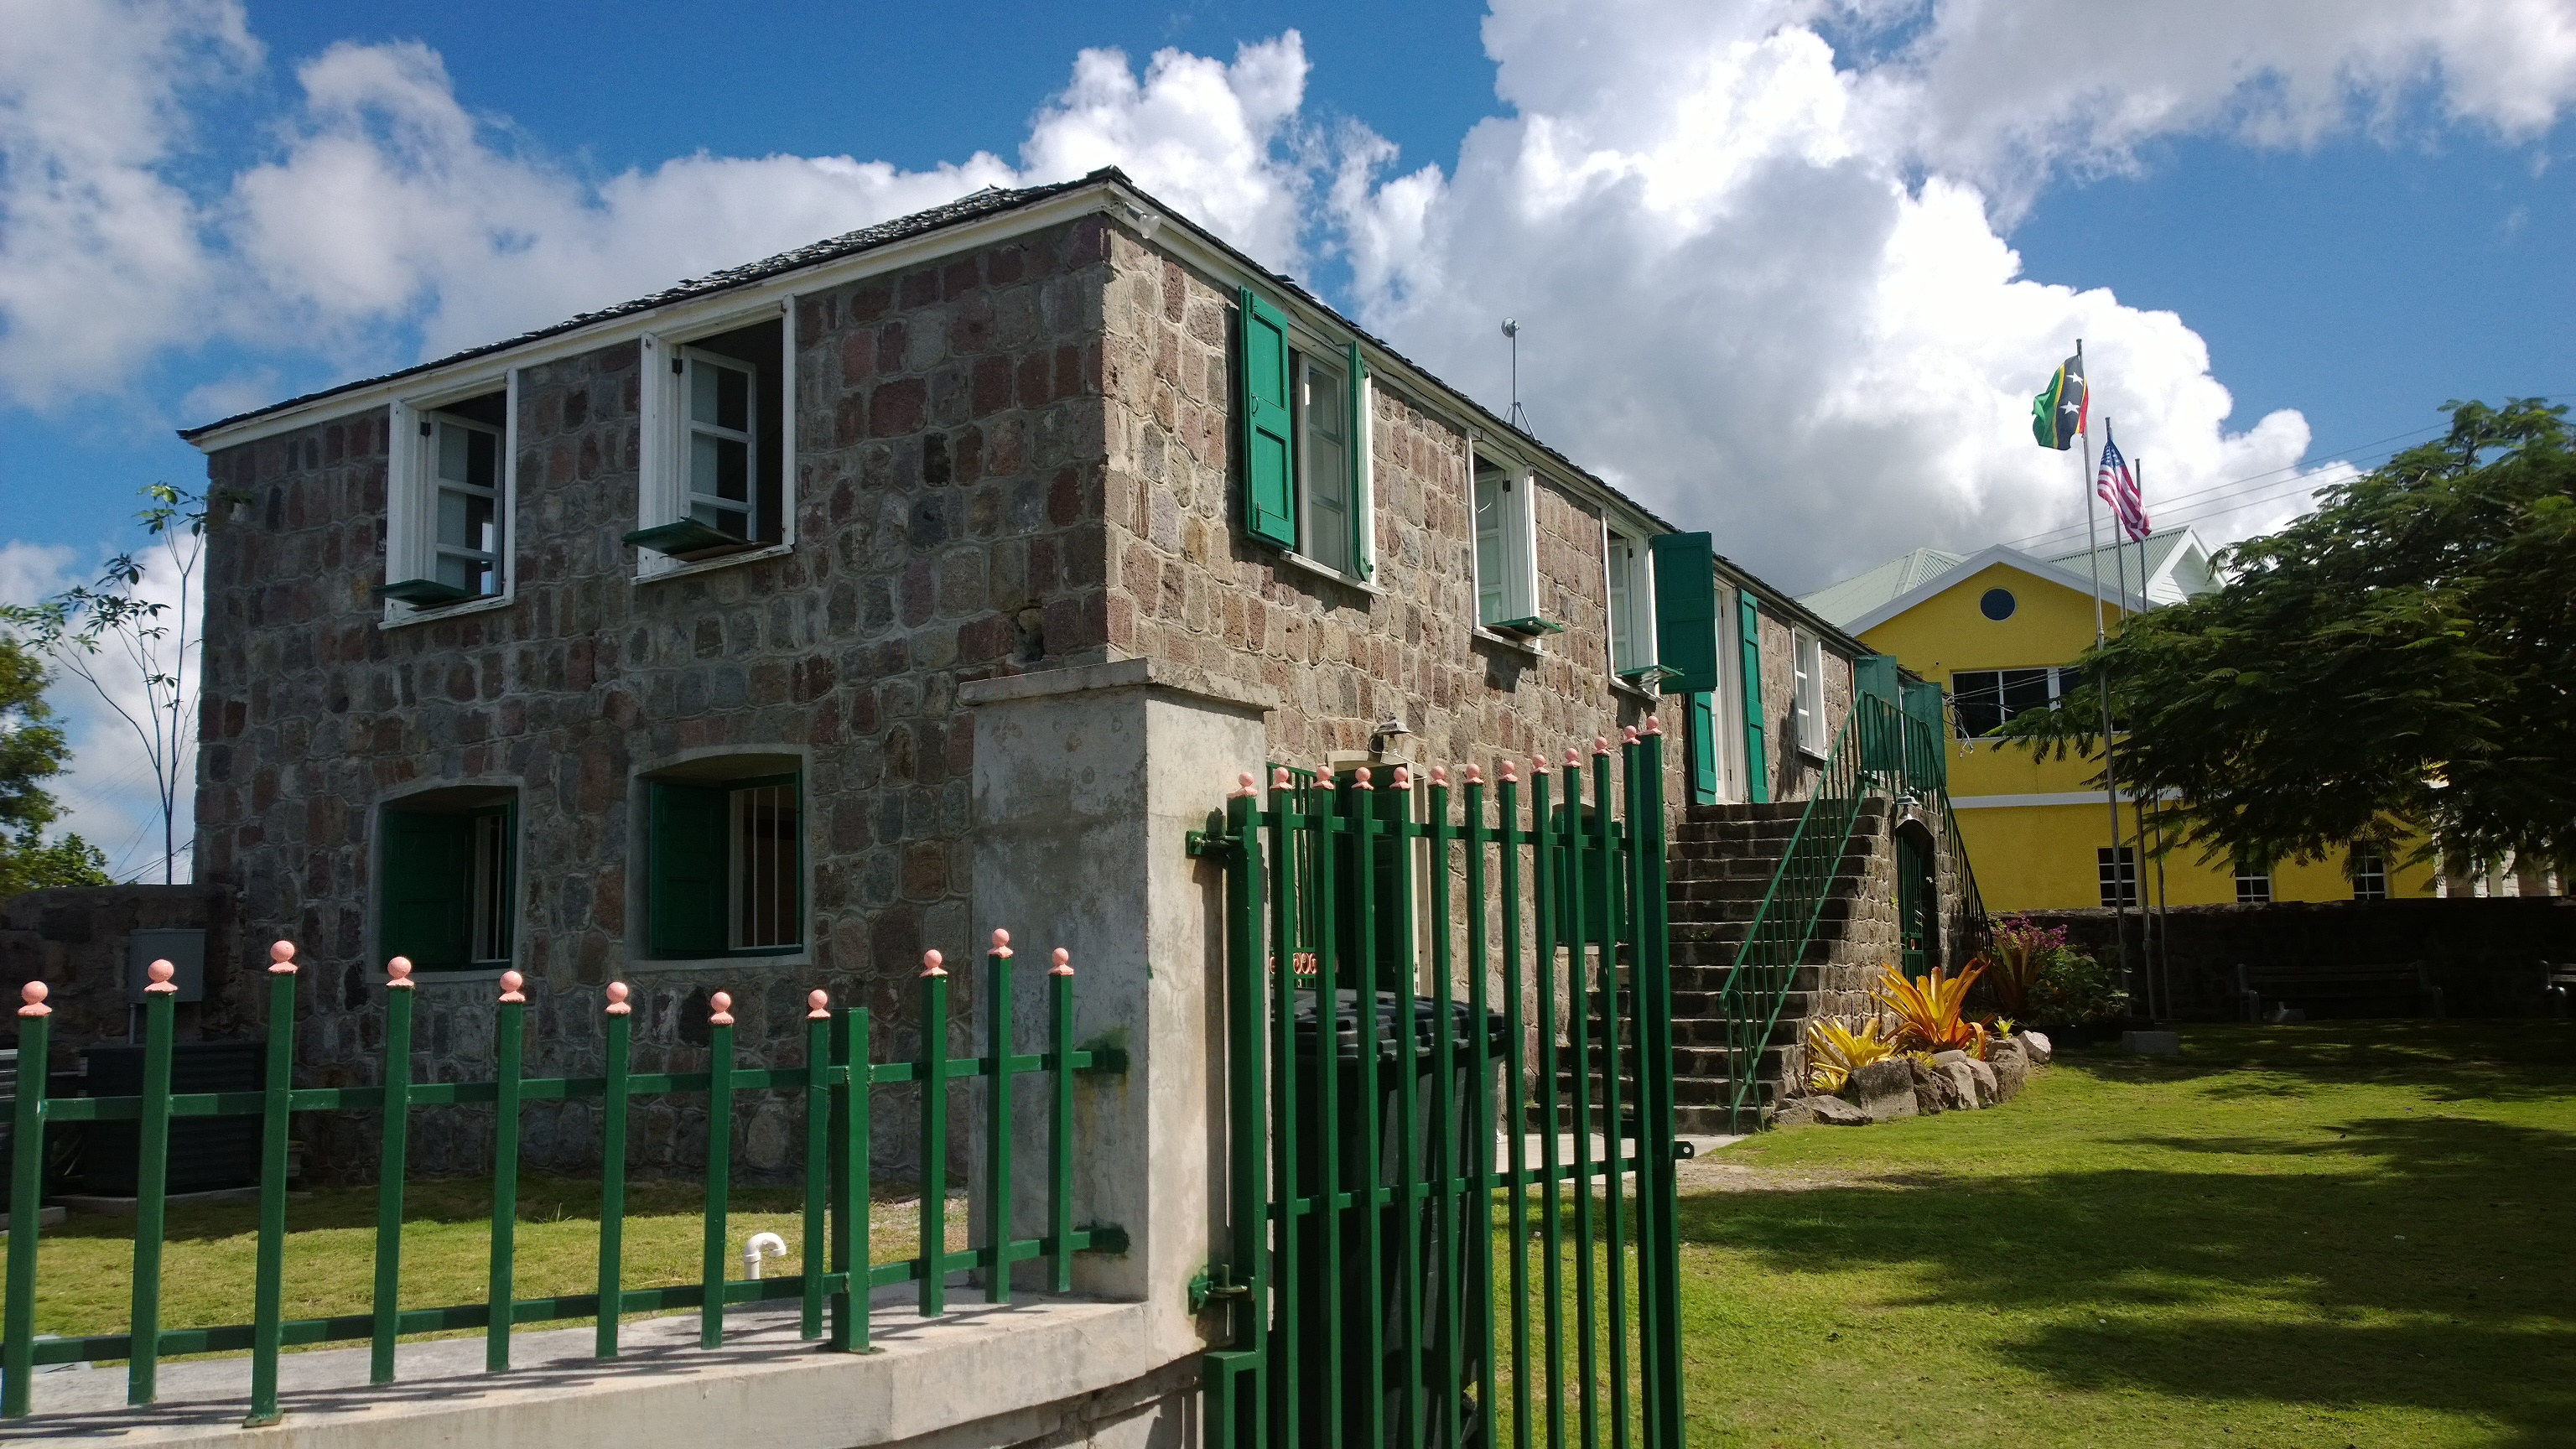 WP 20130307 20 15 25 Pro Why You Should Visit Nevis West Indies | Queen of the Caribees